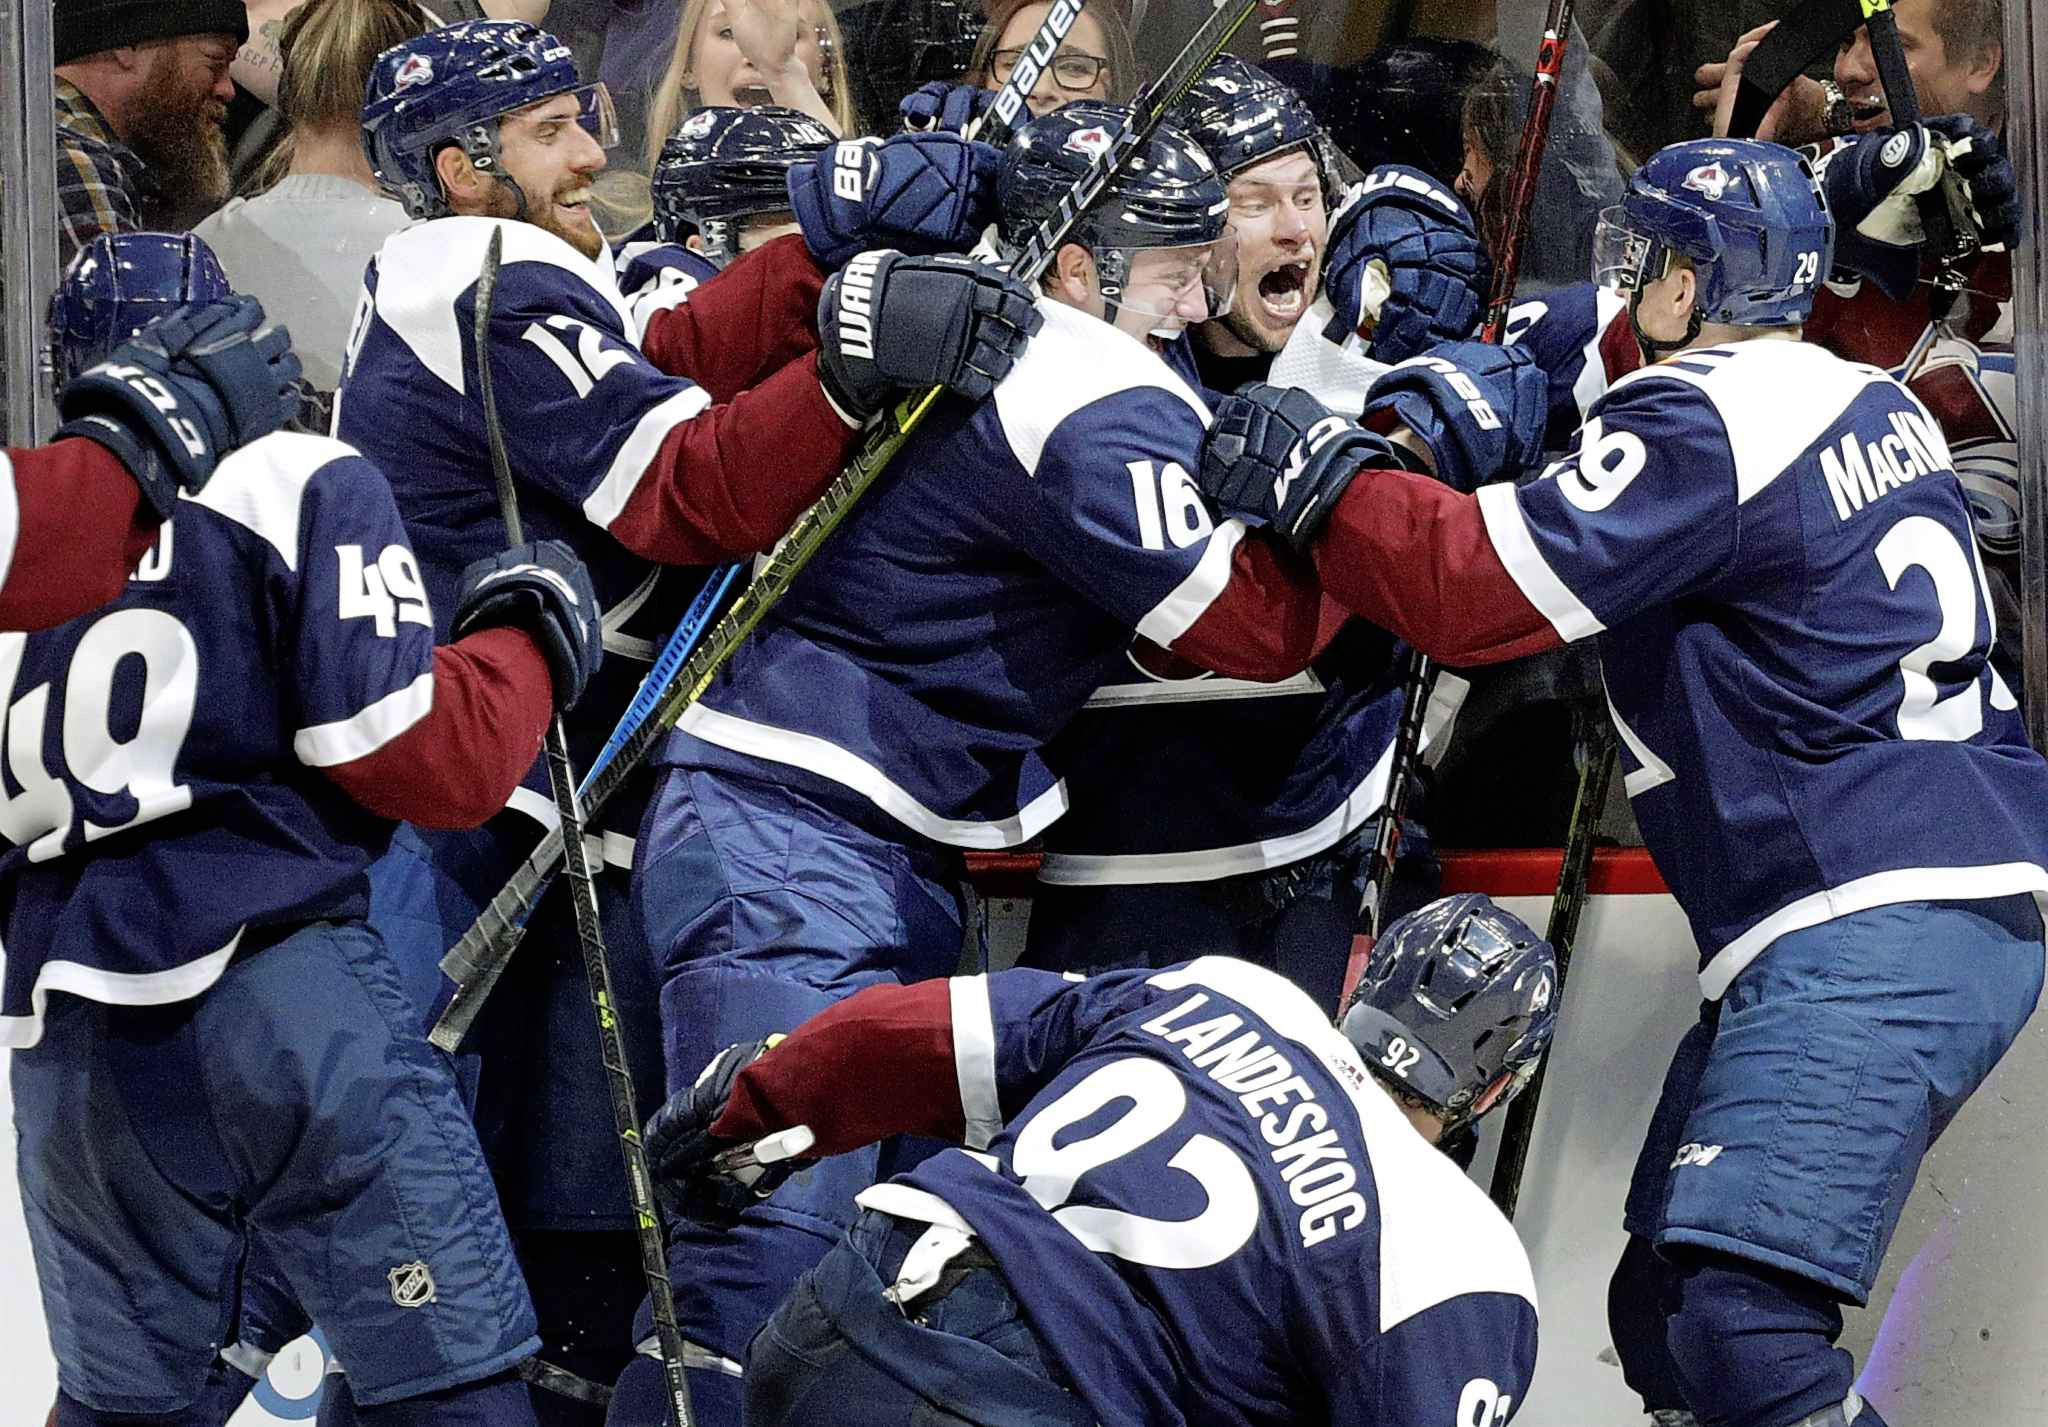 Colorado Avalanche defenceman Nikita Zadorov hugs defenceman Erik Johnson as centre Nathan MacKinnon joins the celebration after Johnson scored the game-winning goal in overtime against the Winnipeg Jets in Denver, Thursday.